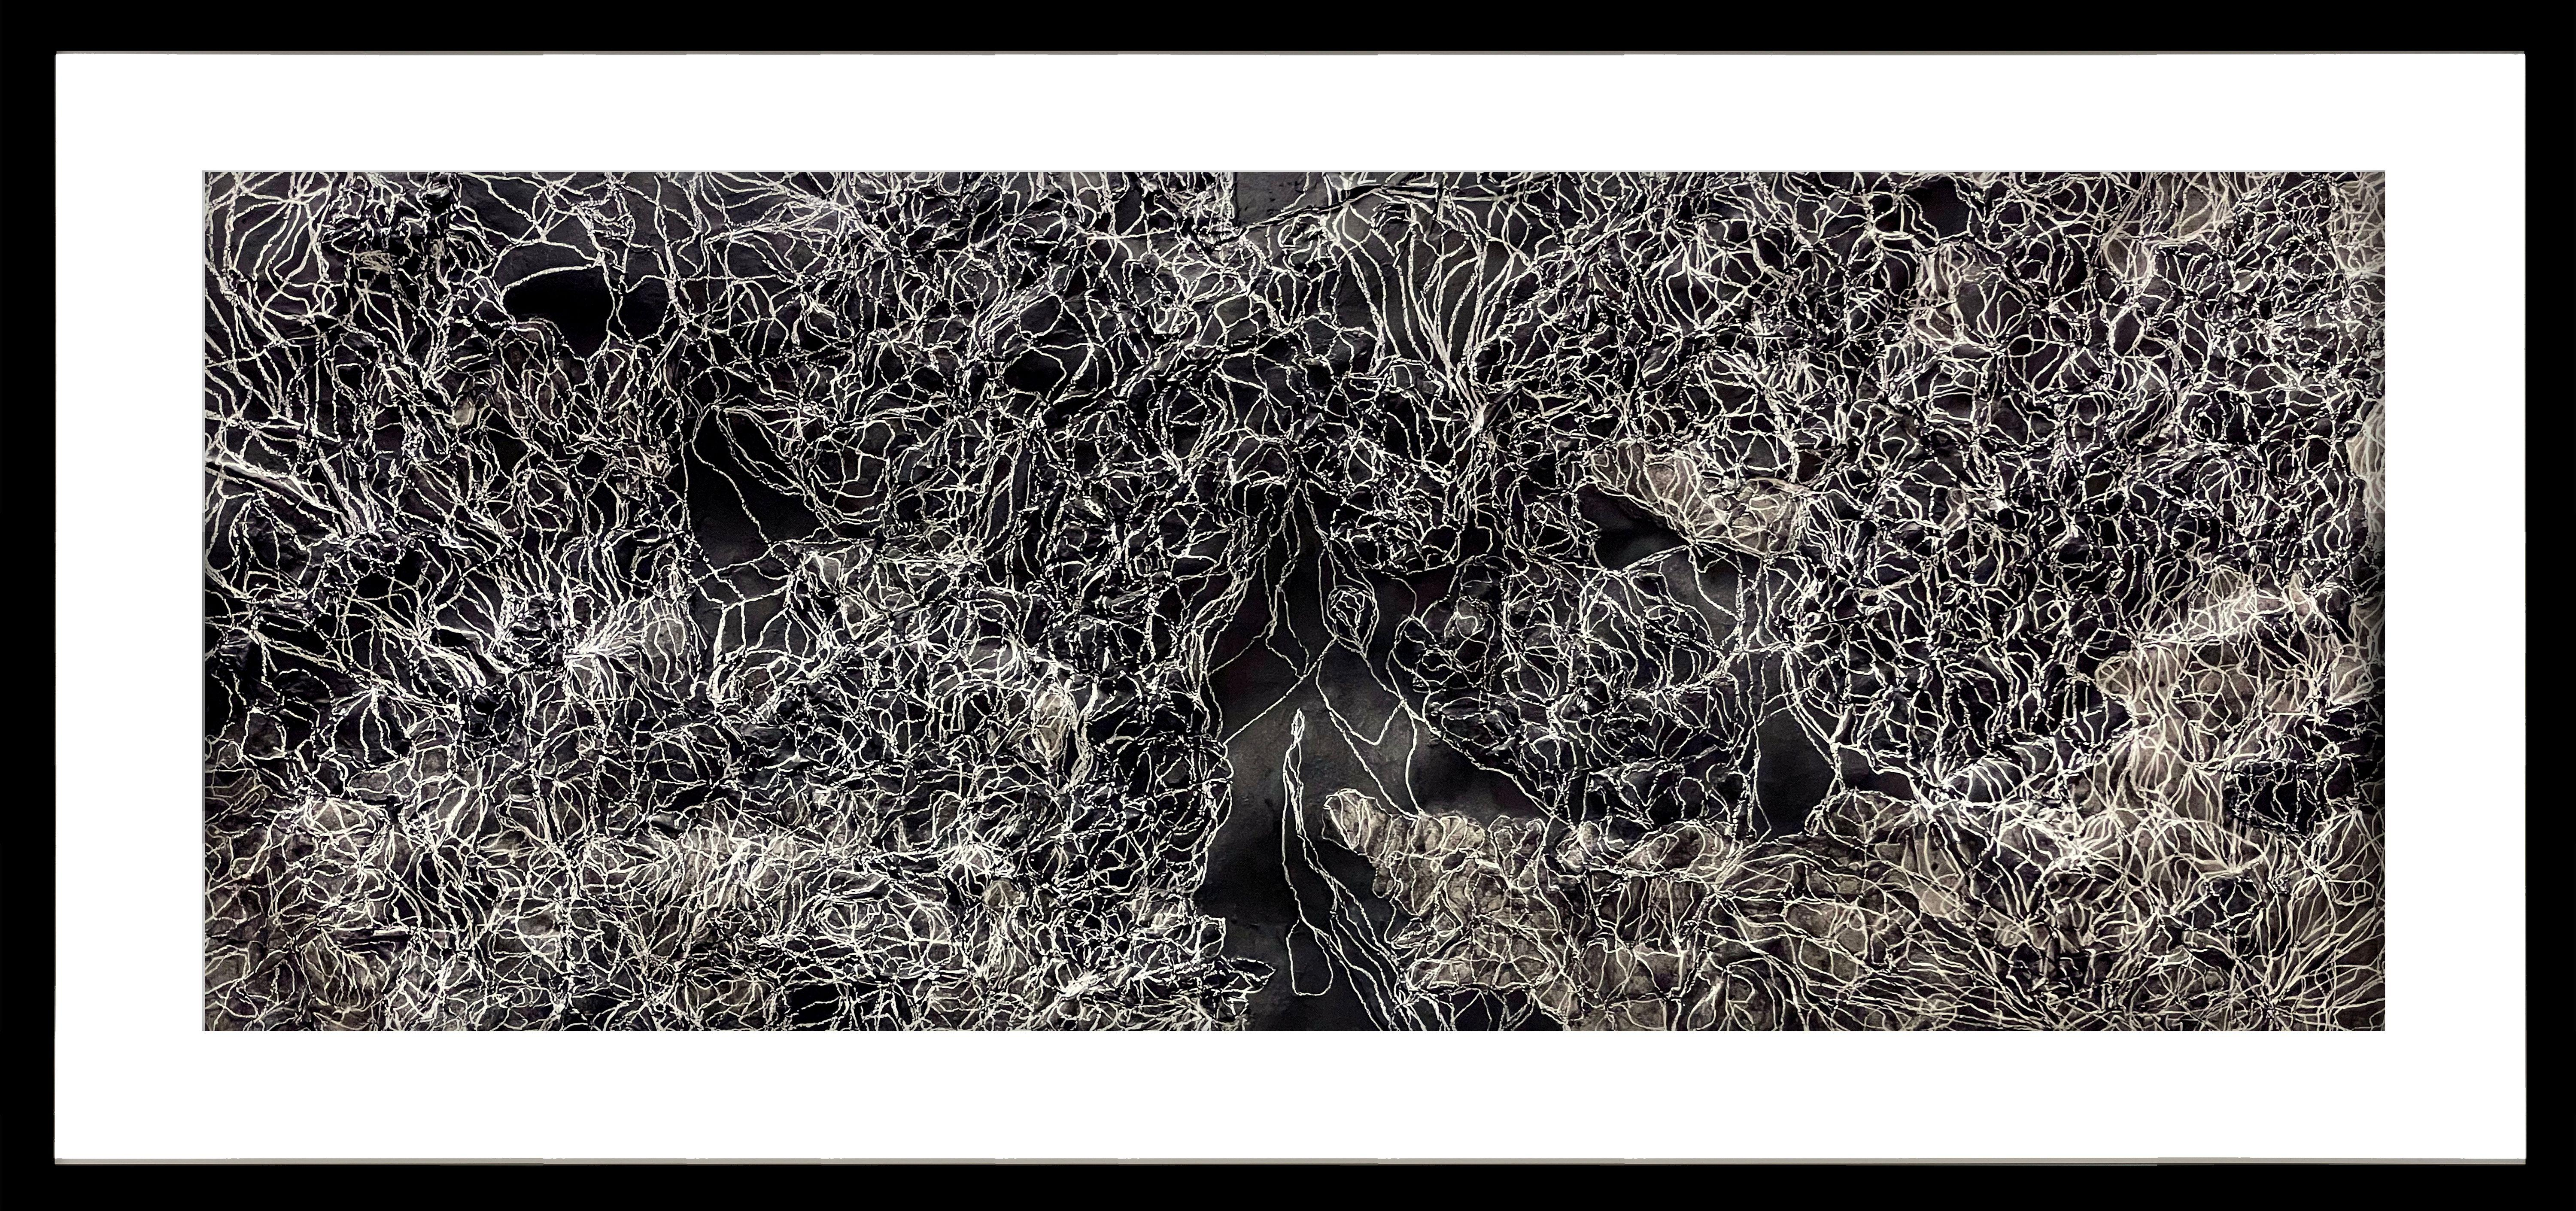 Fragments of Memory V - Textured Contemporary Abstract in Black & White